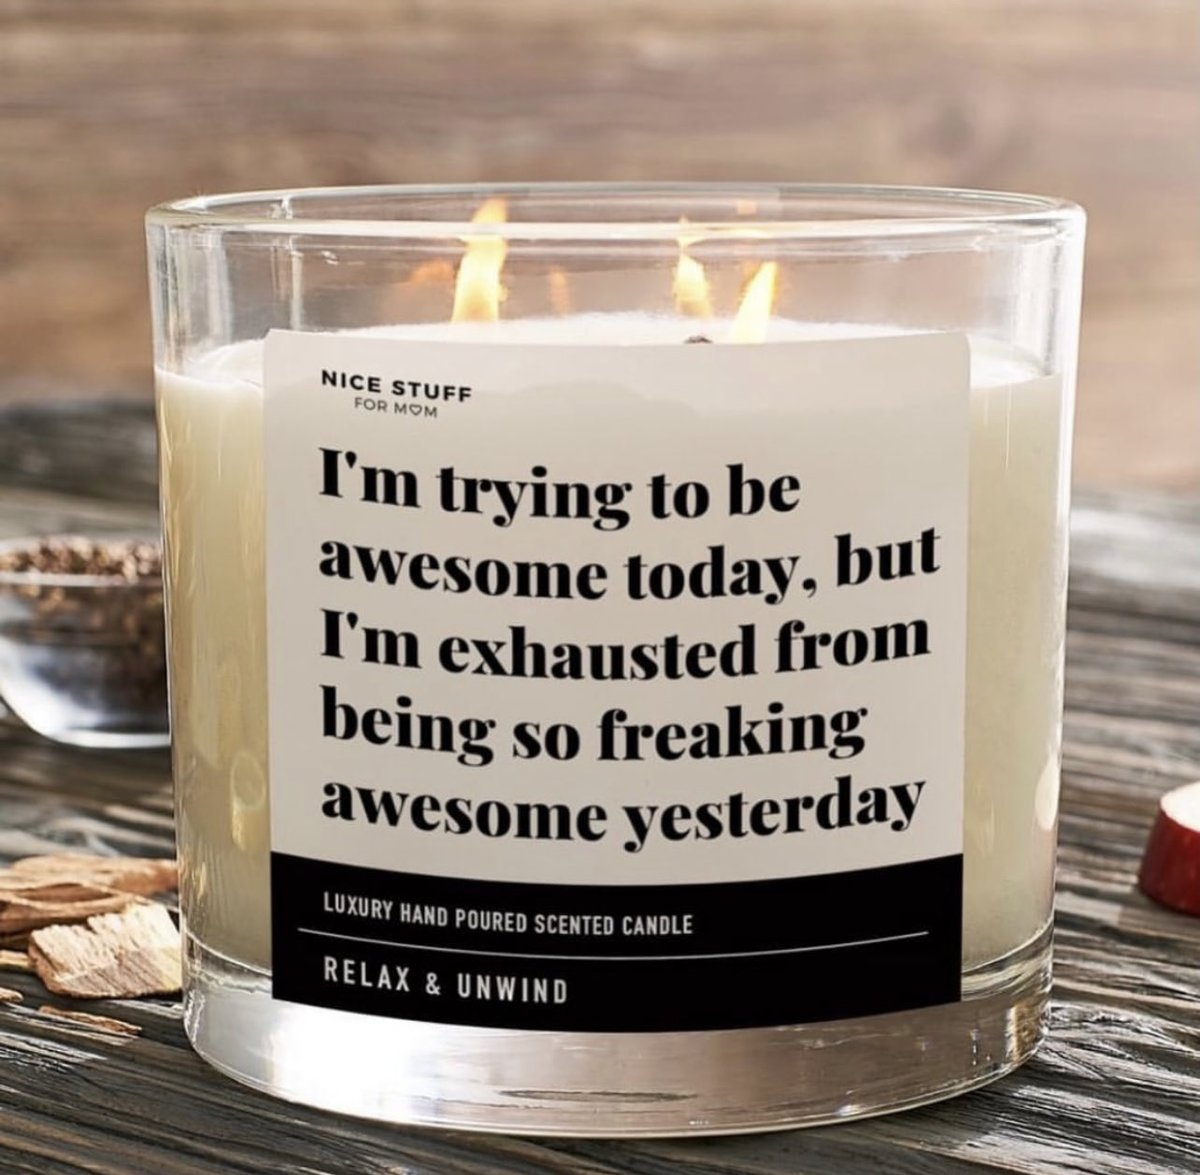 That's right 😊  #awesome #beawesome #beawesometoday #bealight #trying #survive #triumph #thursday #thursdaythoughts #fierce #thursdaymotivation #staystrong #thursdaymood #believeinyourself #wegotthis #shine #borntoshine #widowsofinstagram #widowed #disabled #singleparent